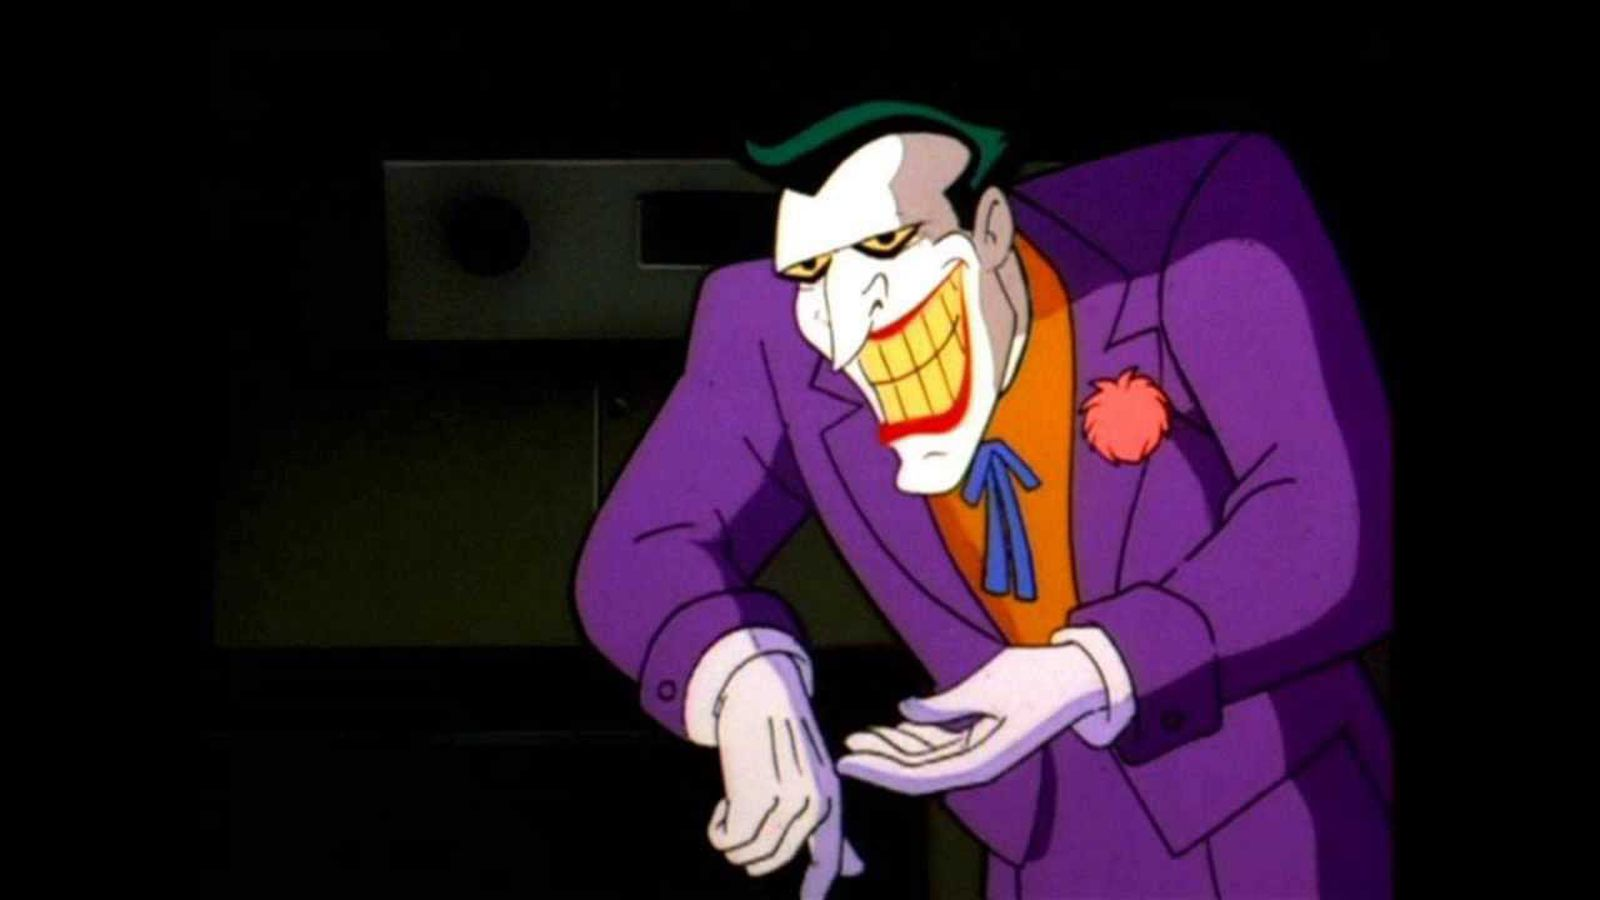 Mark Hamill reads a Trump tweet as the Joker, and it's perfect